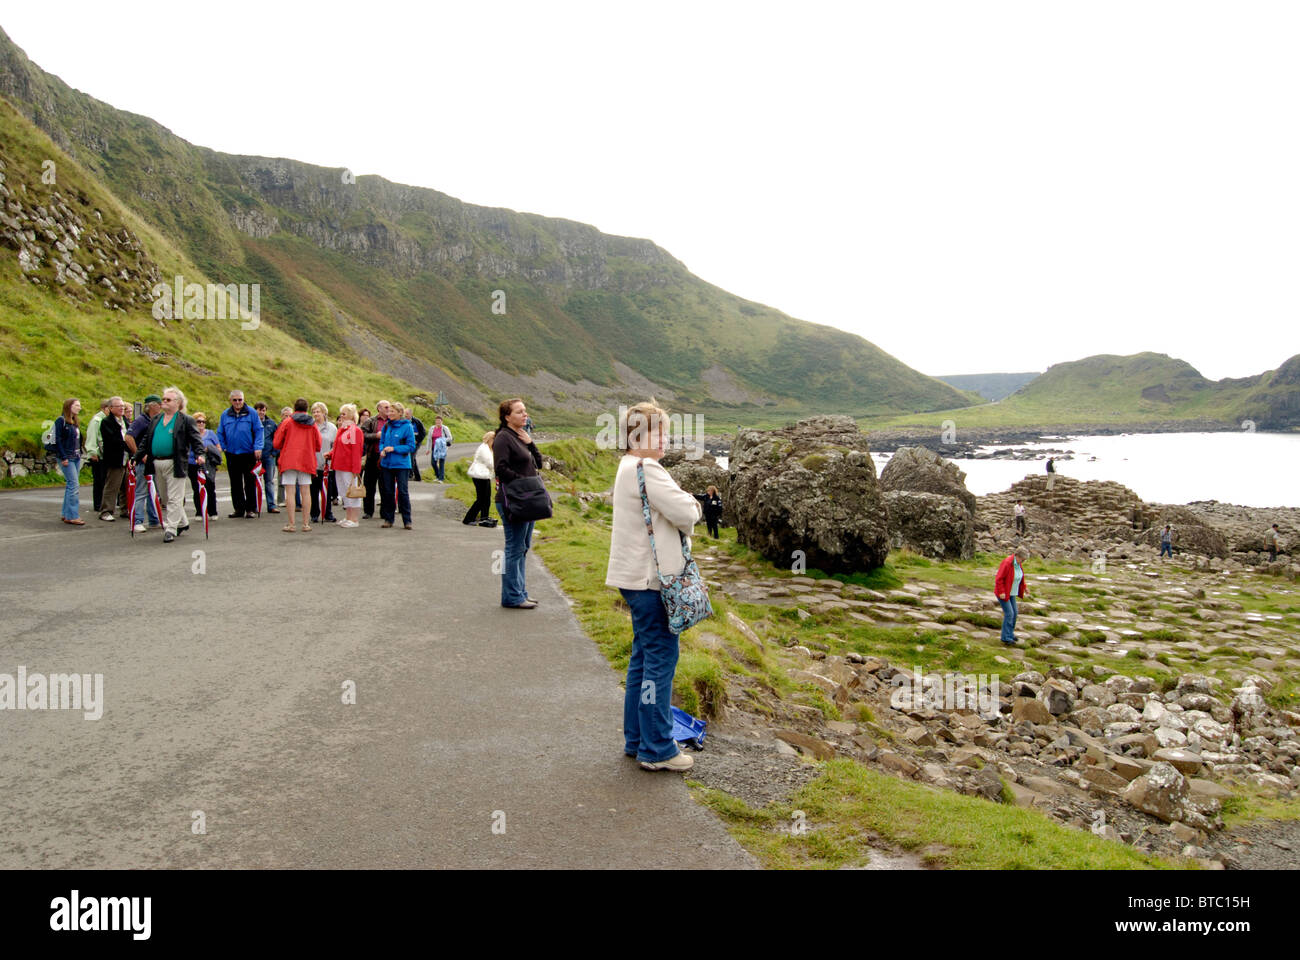 Visitors at the Giants Causeway, County Antrim, Northern Ireland - Stock Image